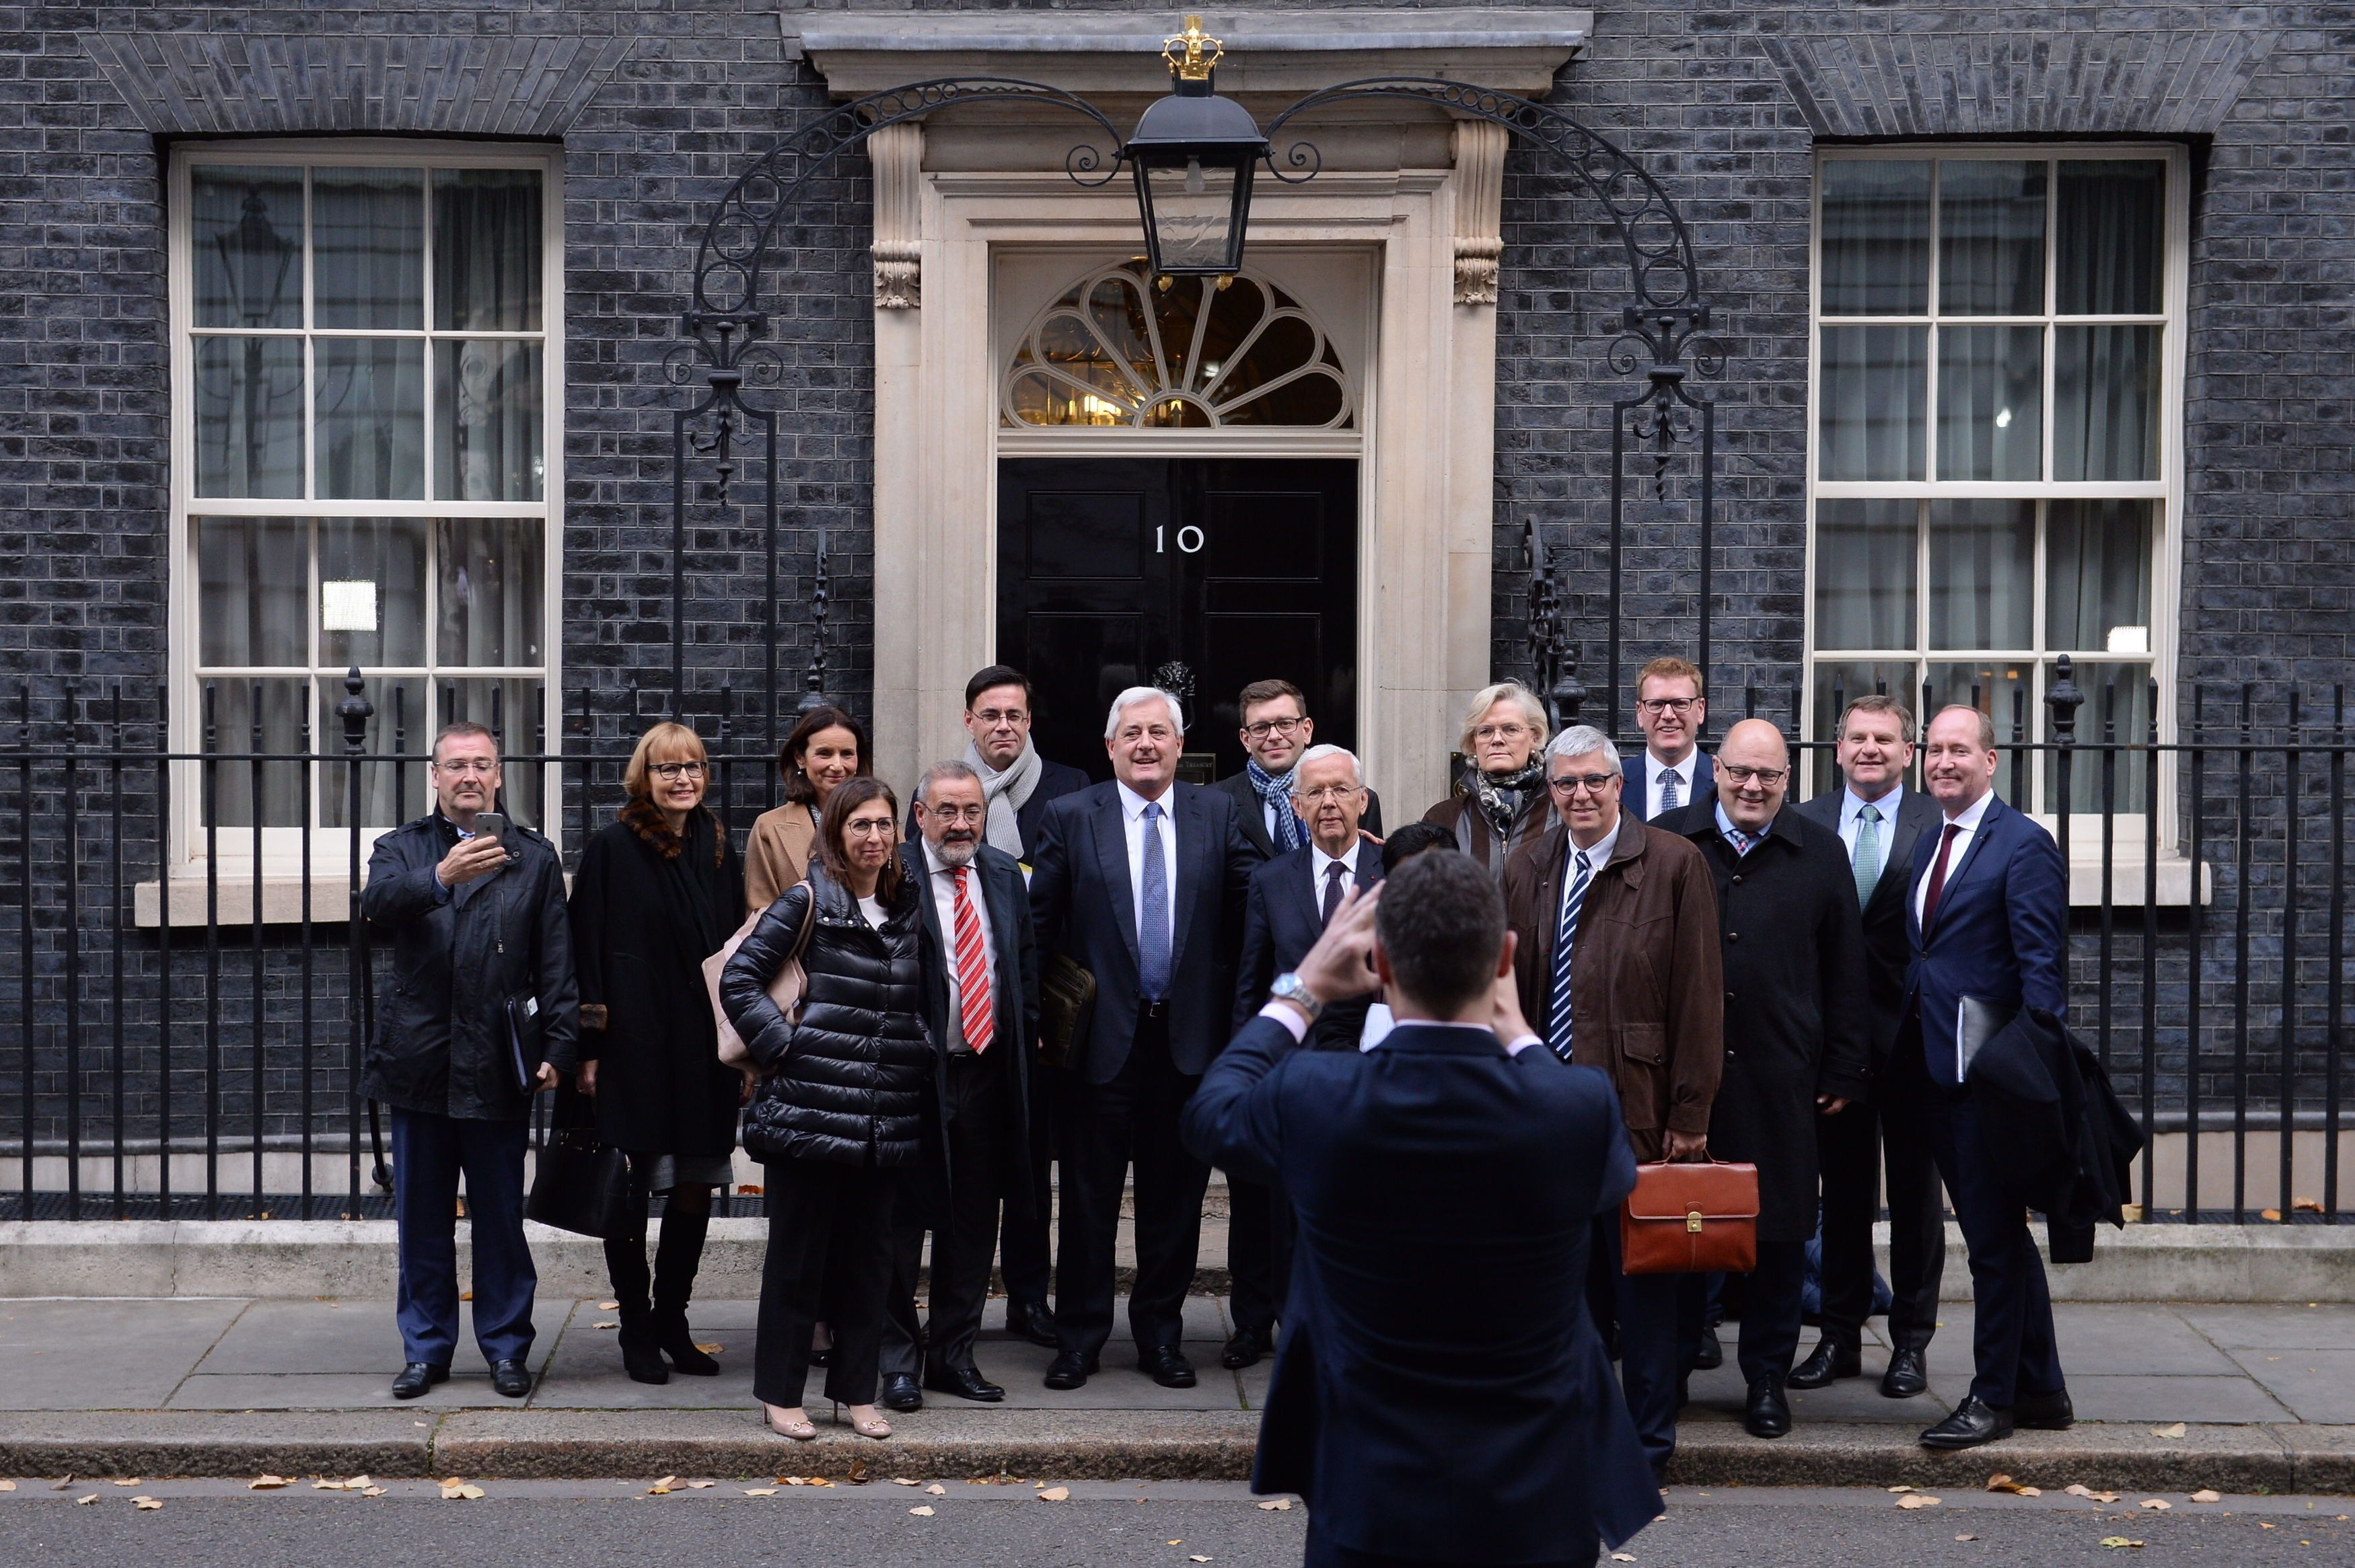 <i>Business leaders from Europe and the UK pose for a group photo as they leave 10 Downing Street, London, after a meeting with Prime Minister Theresa May to discuss the future of UK-EU trade post-Brexit.</i>